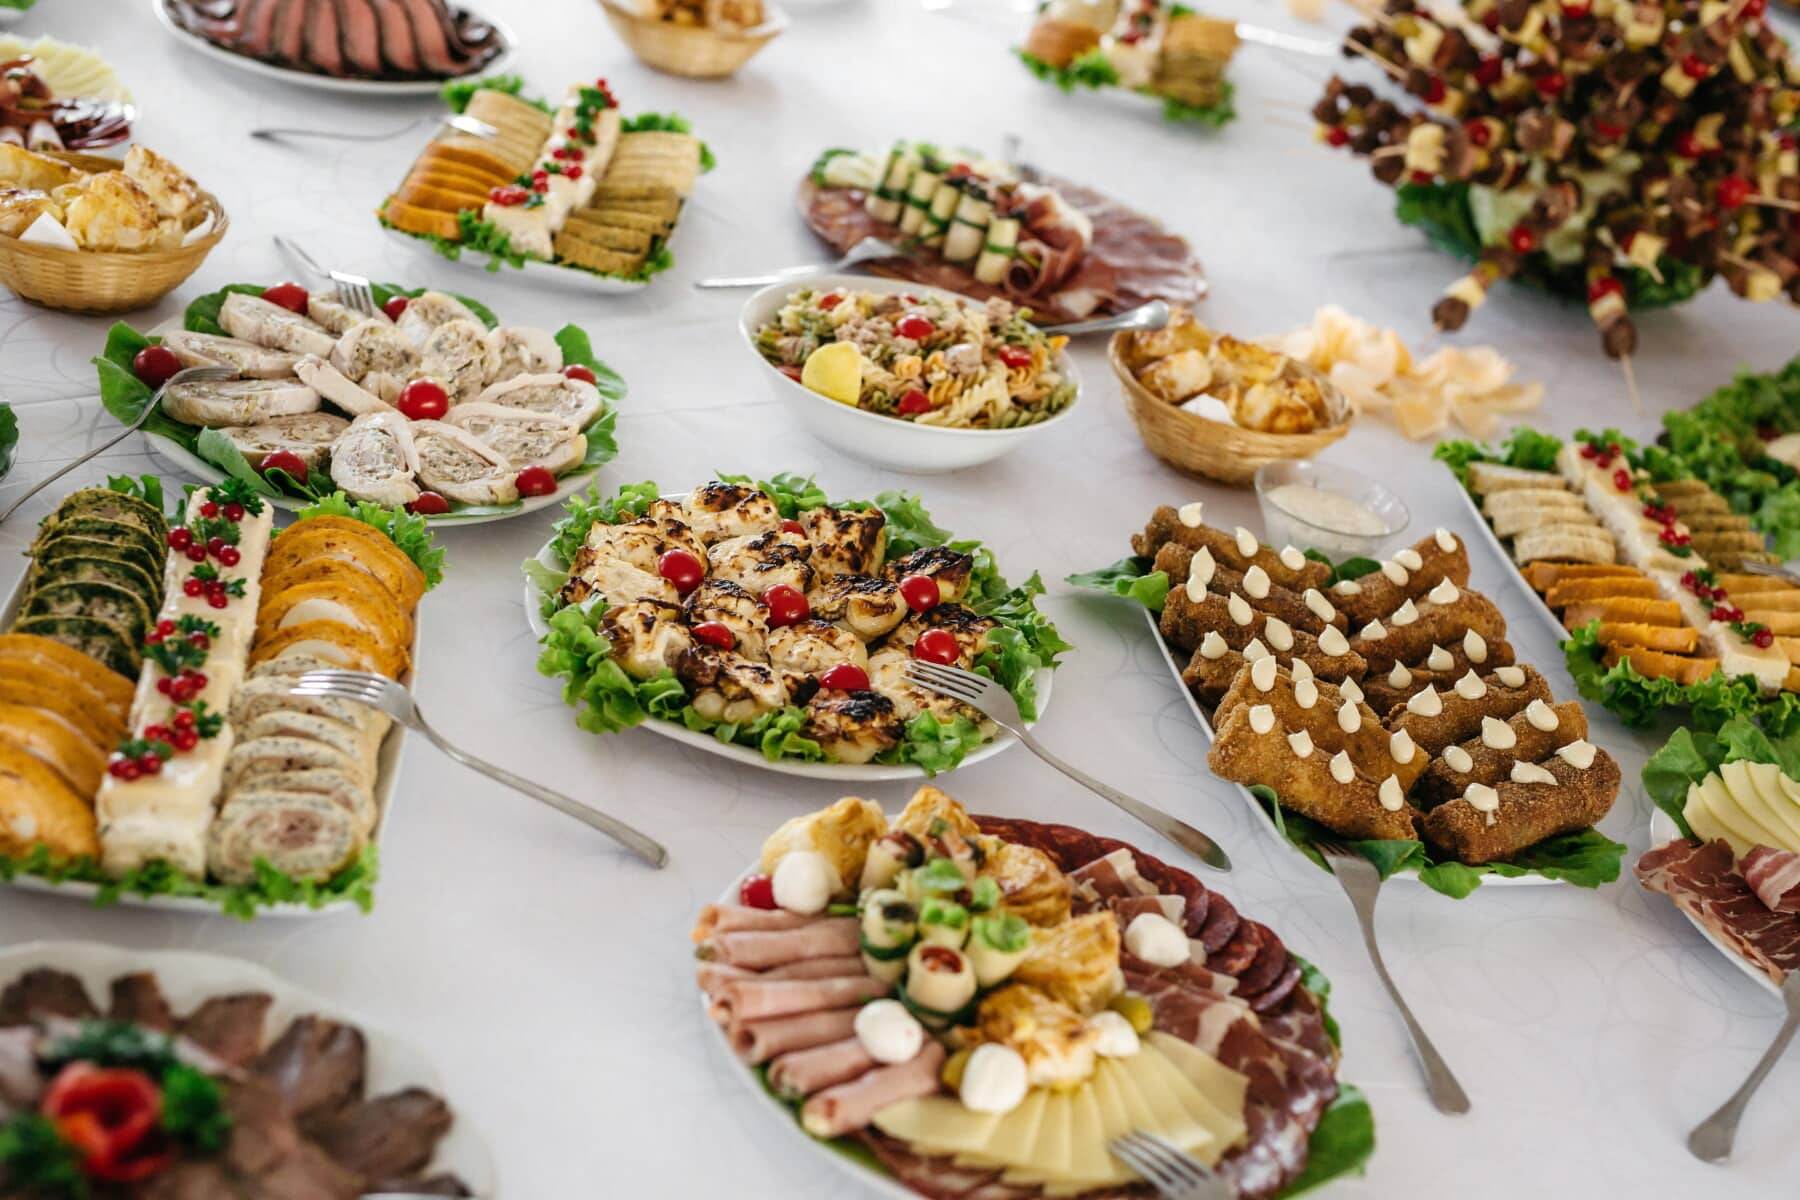 spectacular, banquet, snack, fast food, food, barbecue, delicious, restaurant, lunch, dish